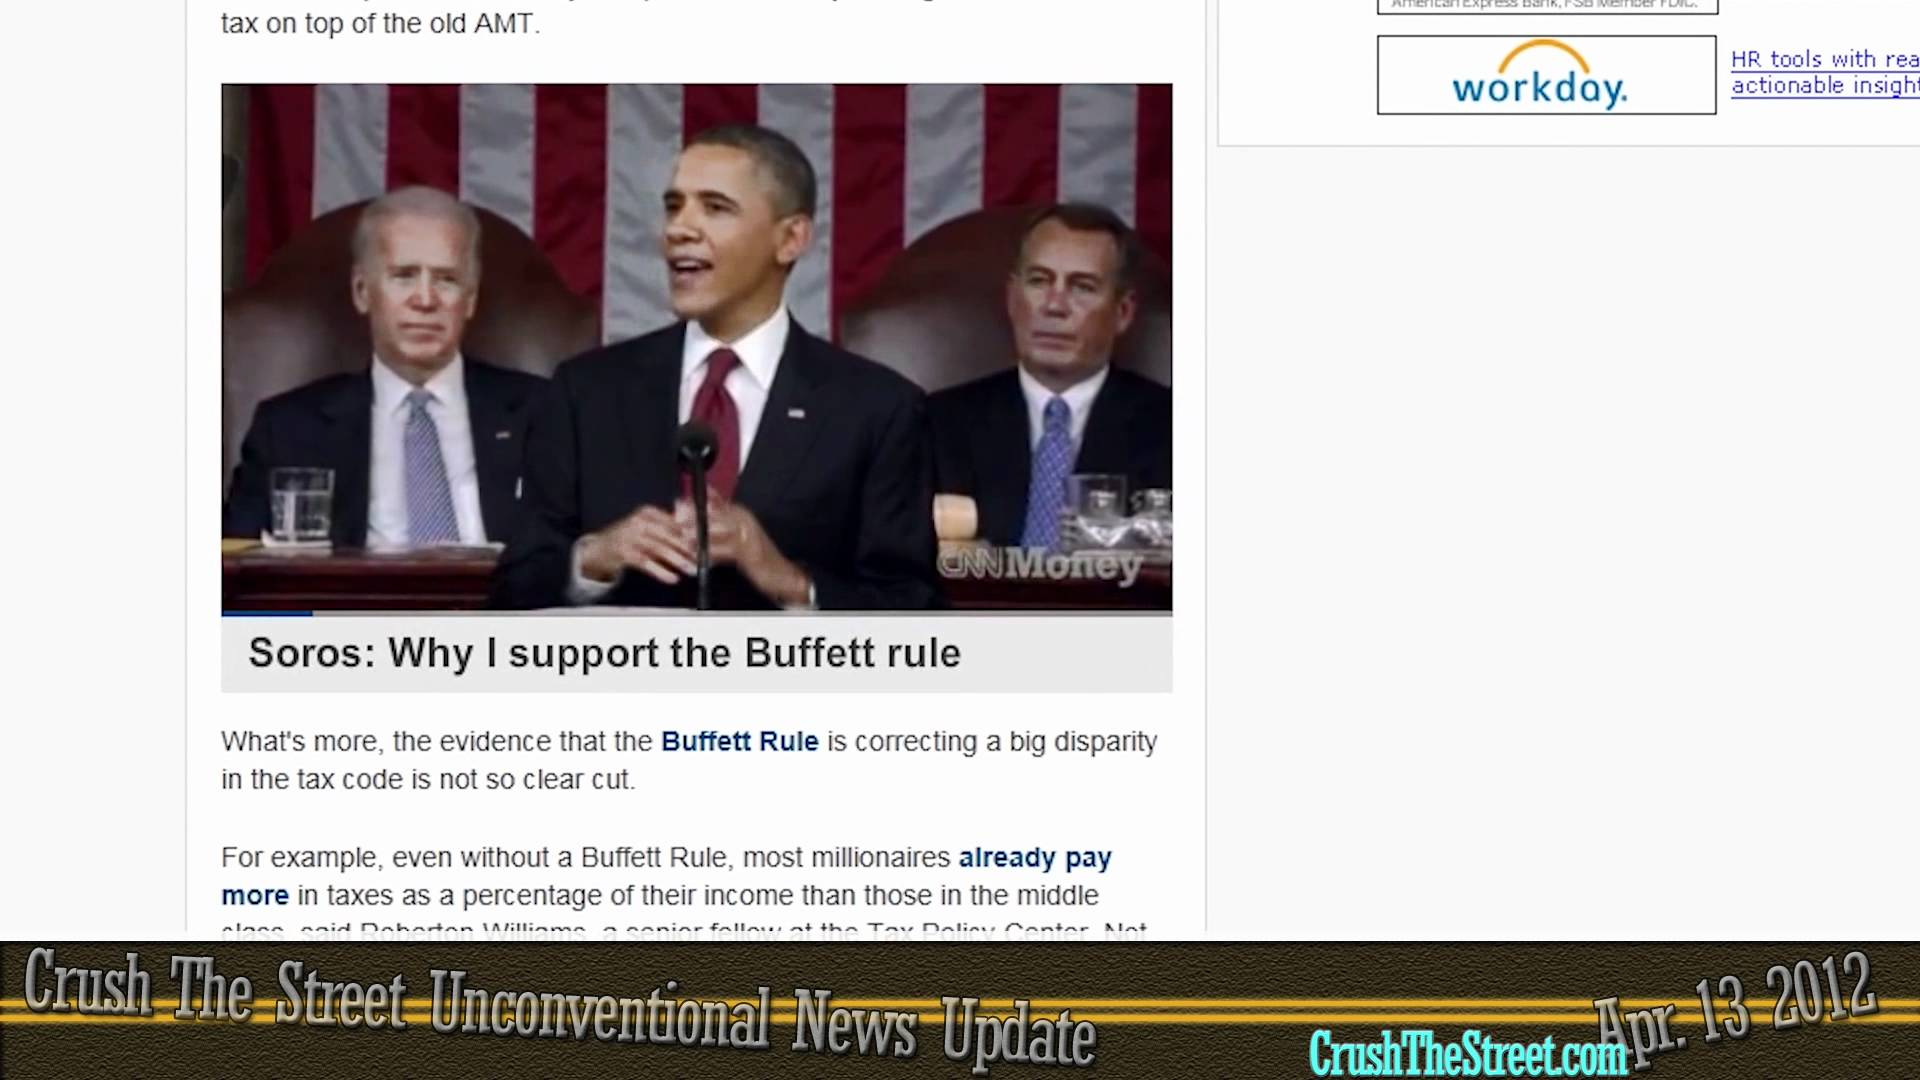 Unconventional News Update for April 13, 2012